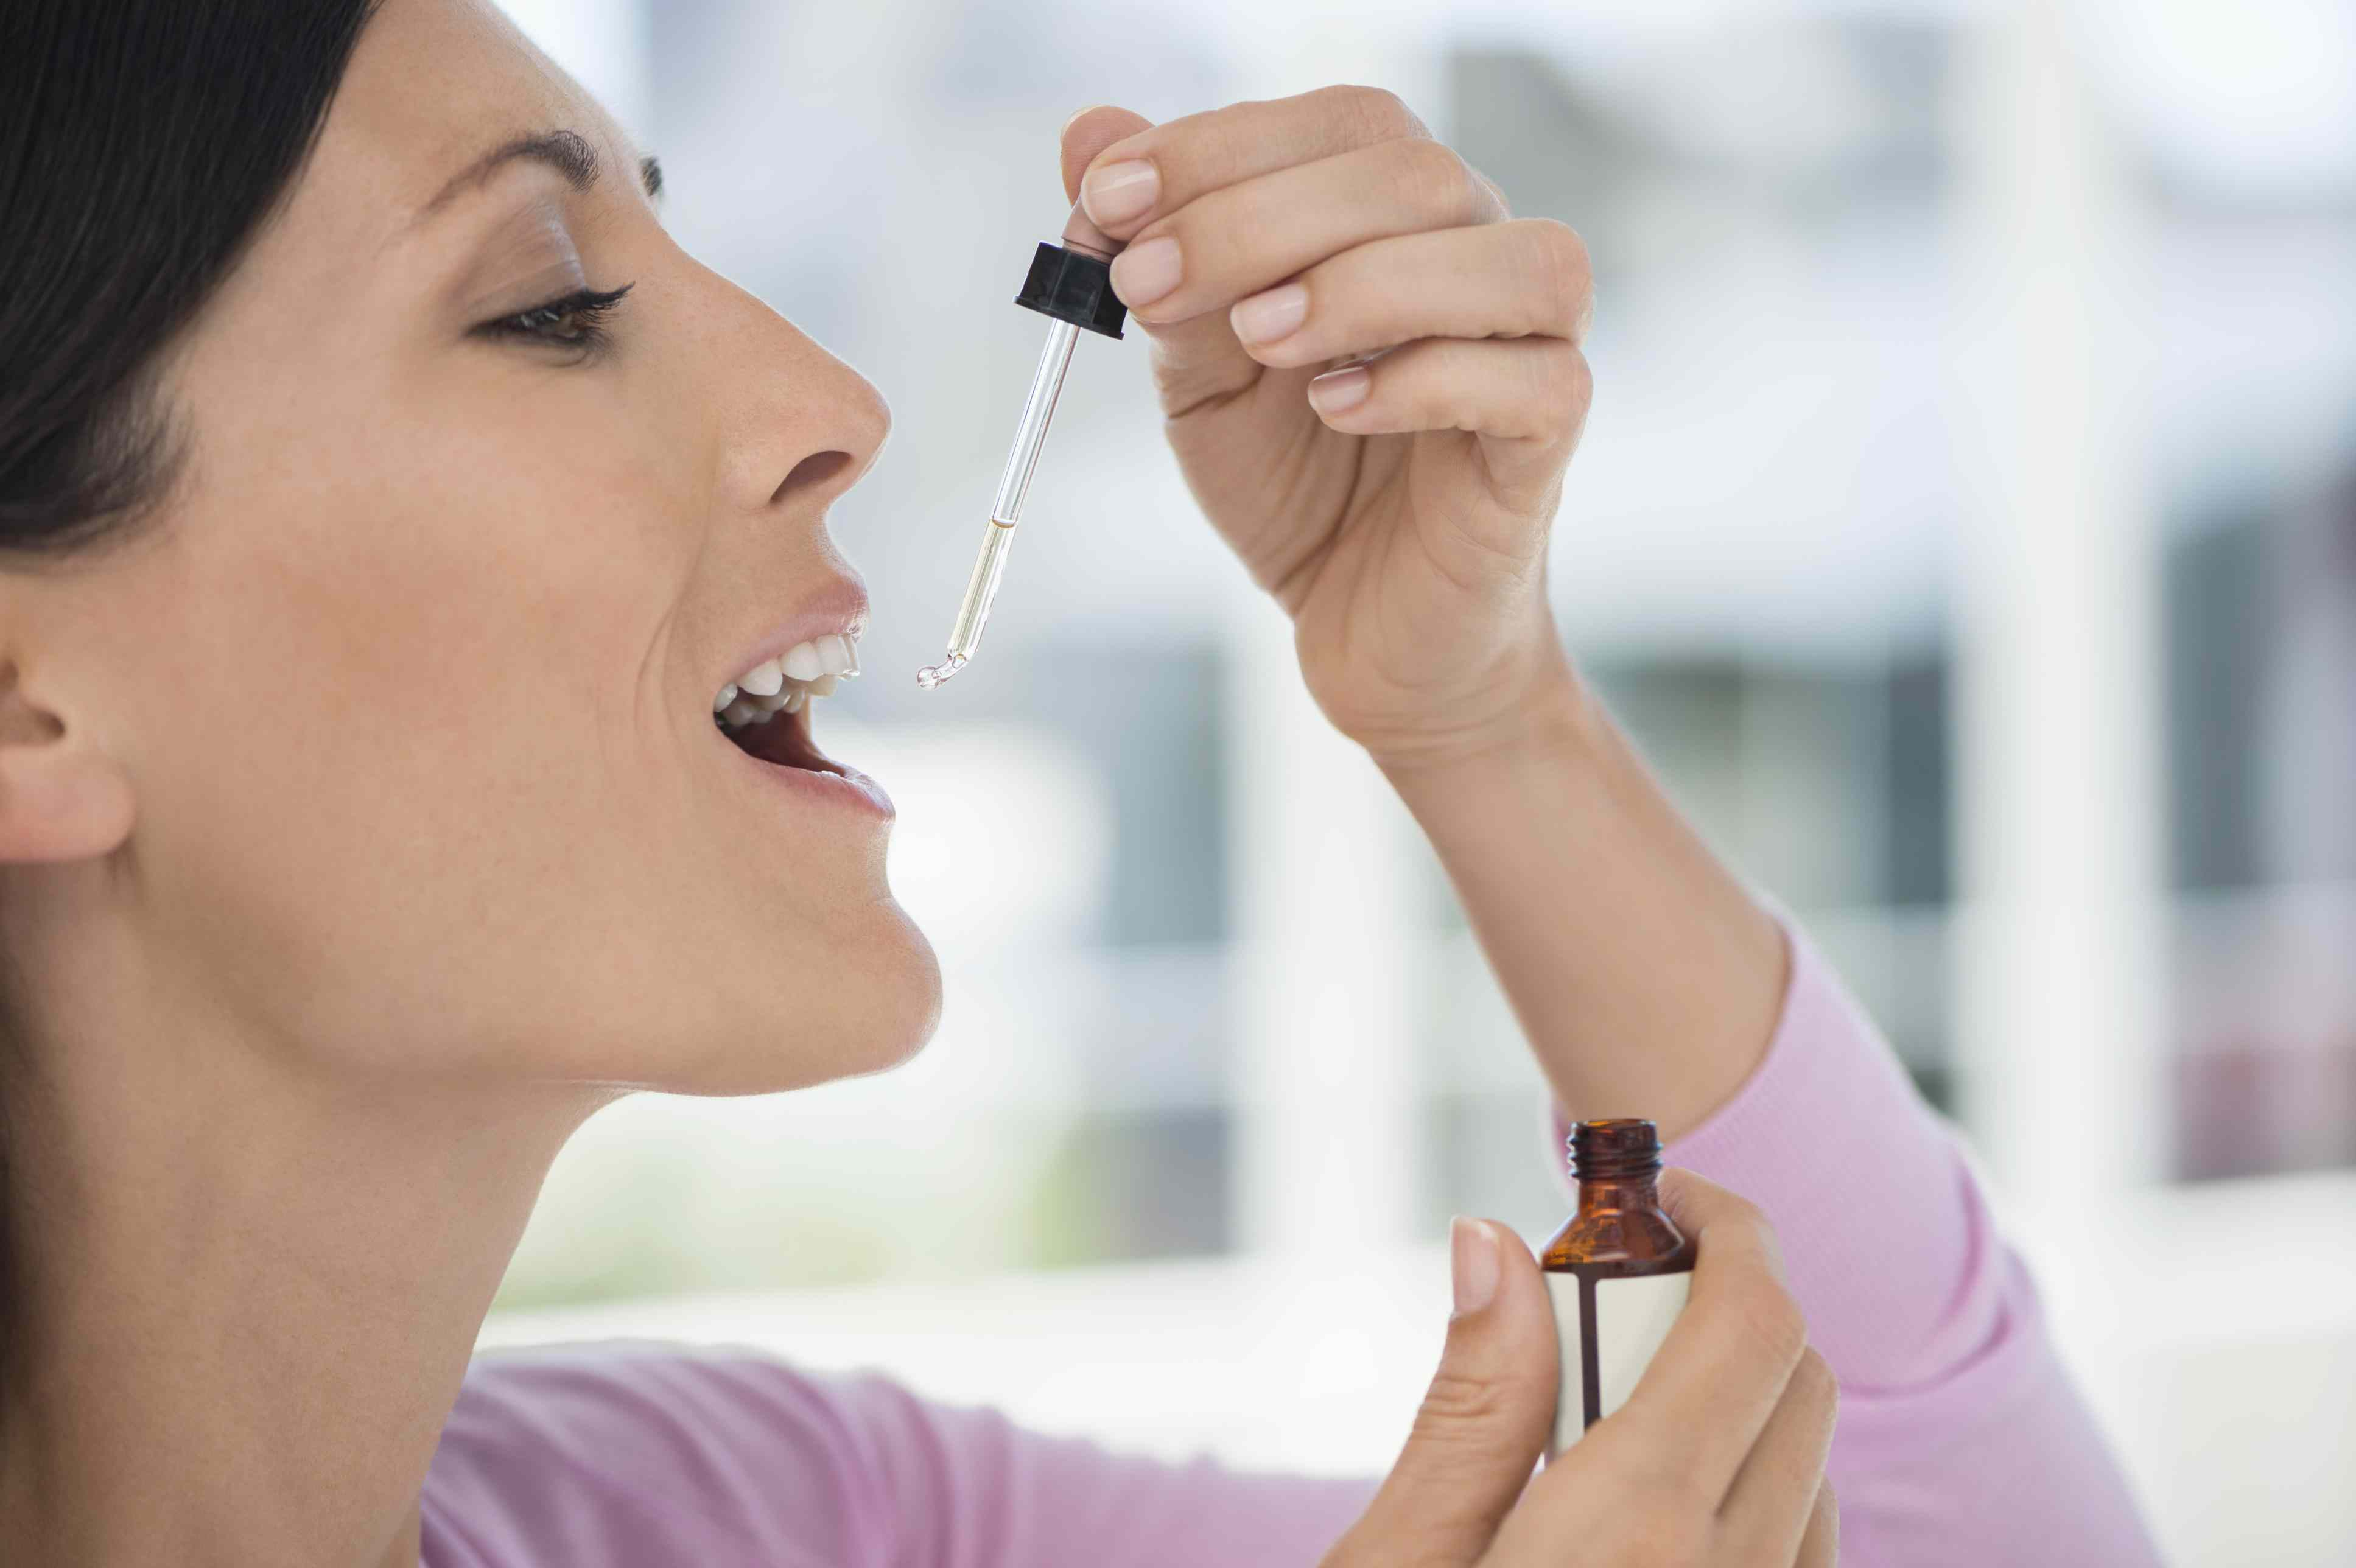 A woman taking homeopathic medicine